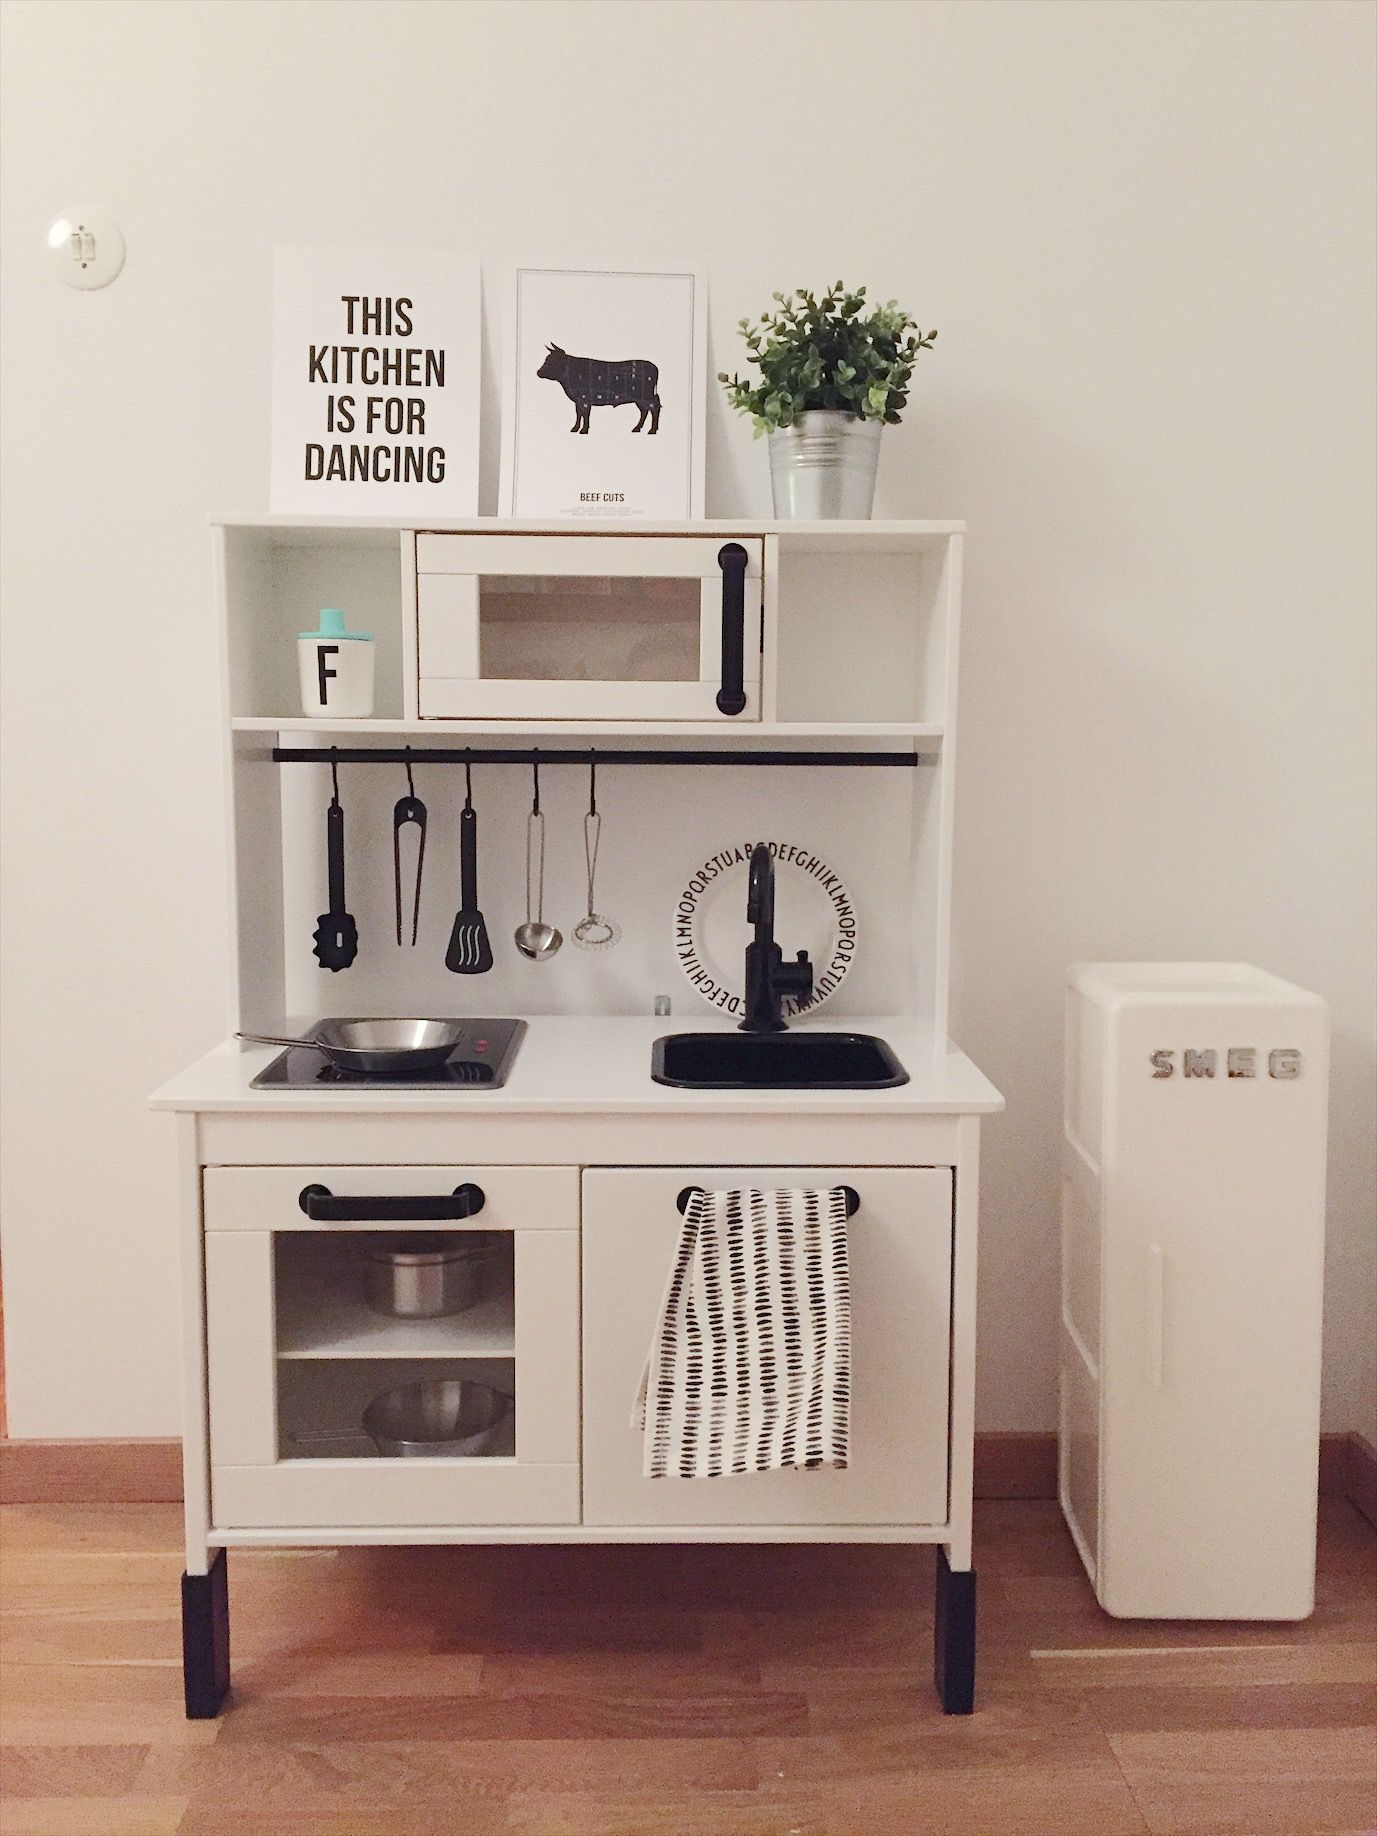 Brio Küche Gebraucht Ikea Duktig Kitchen Hack Makeover Indoor Playhouses In 2018